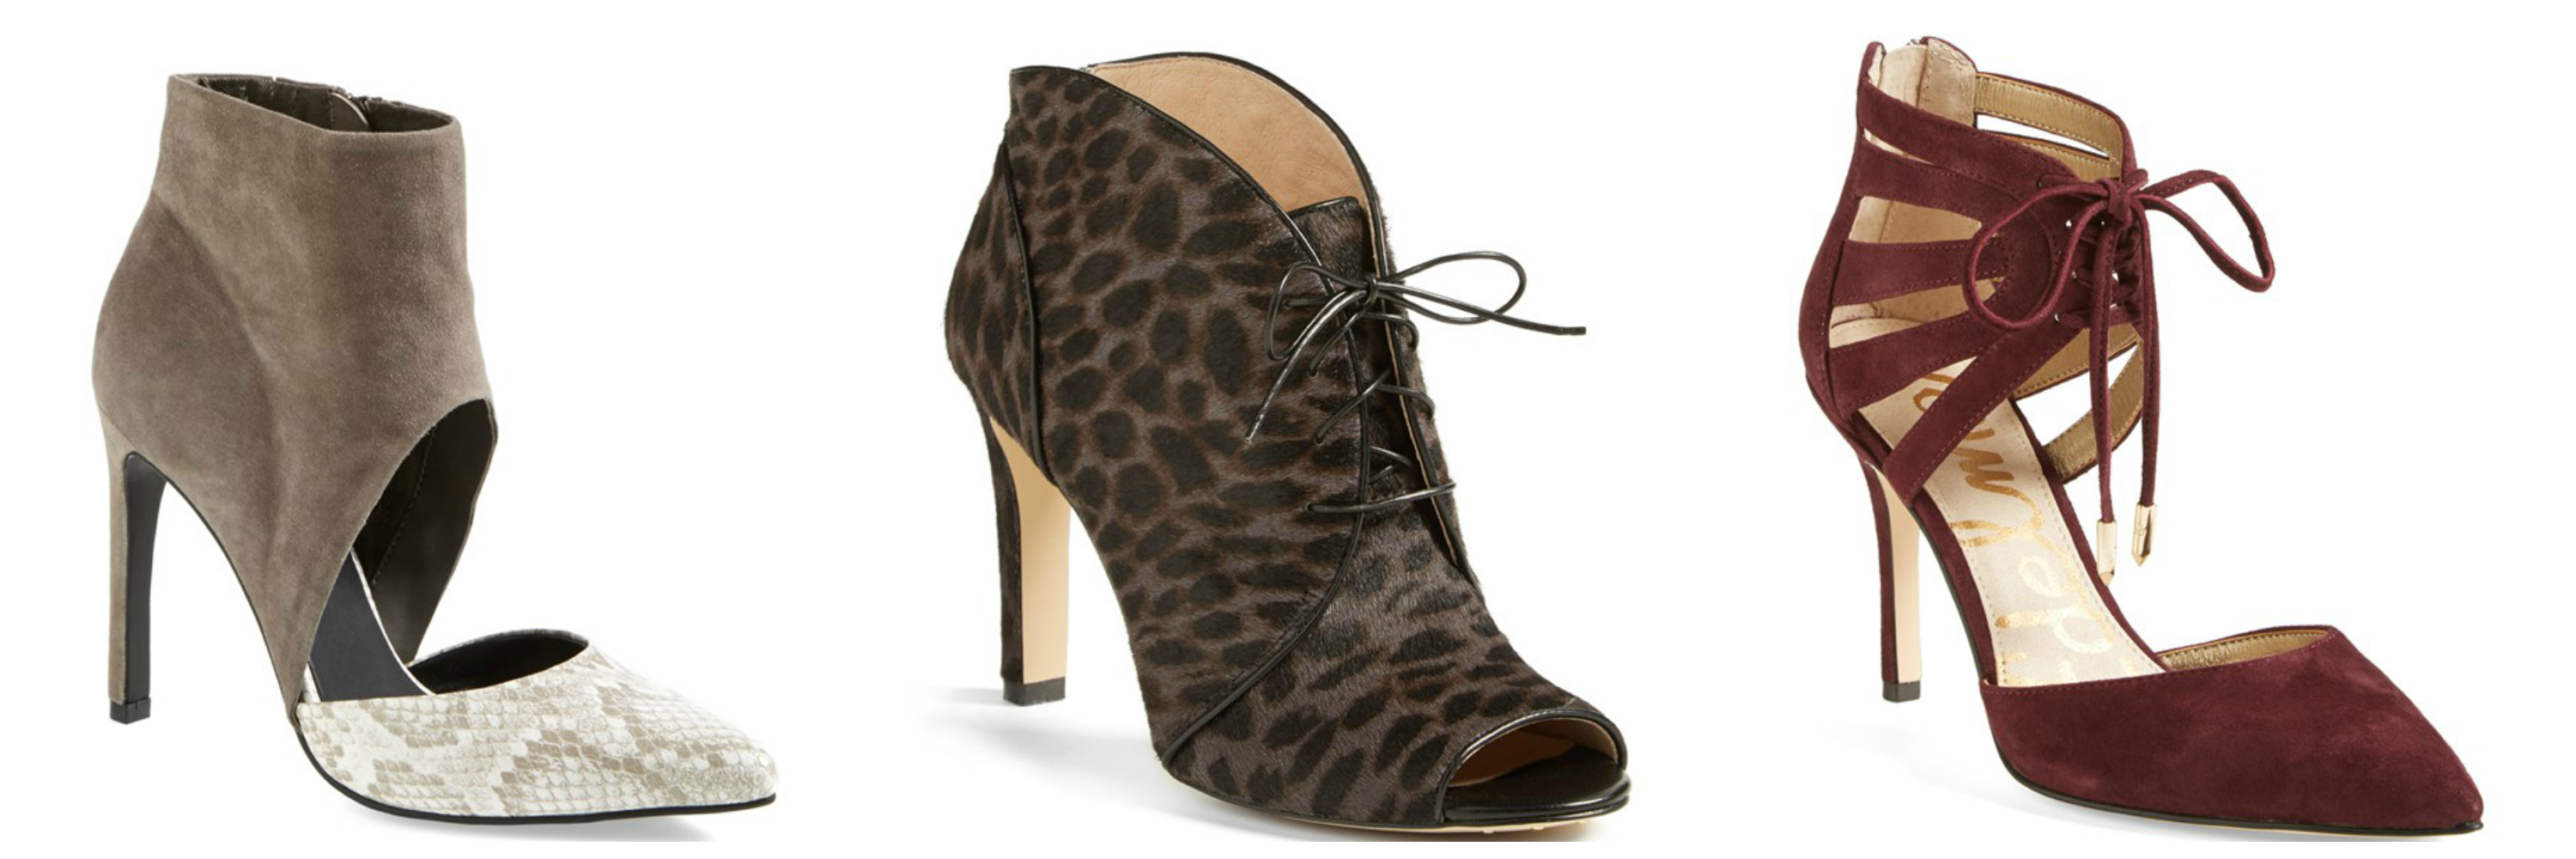 Nordstrom Shoes - ShopStyle